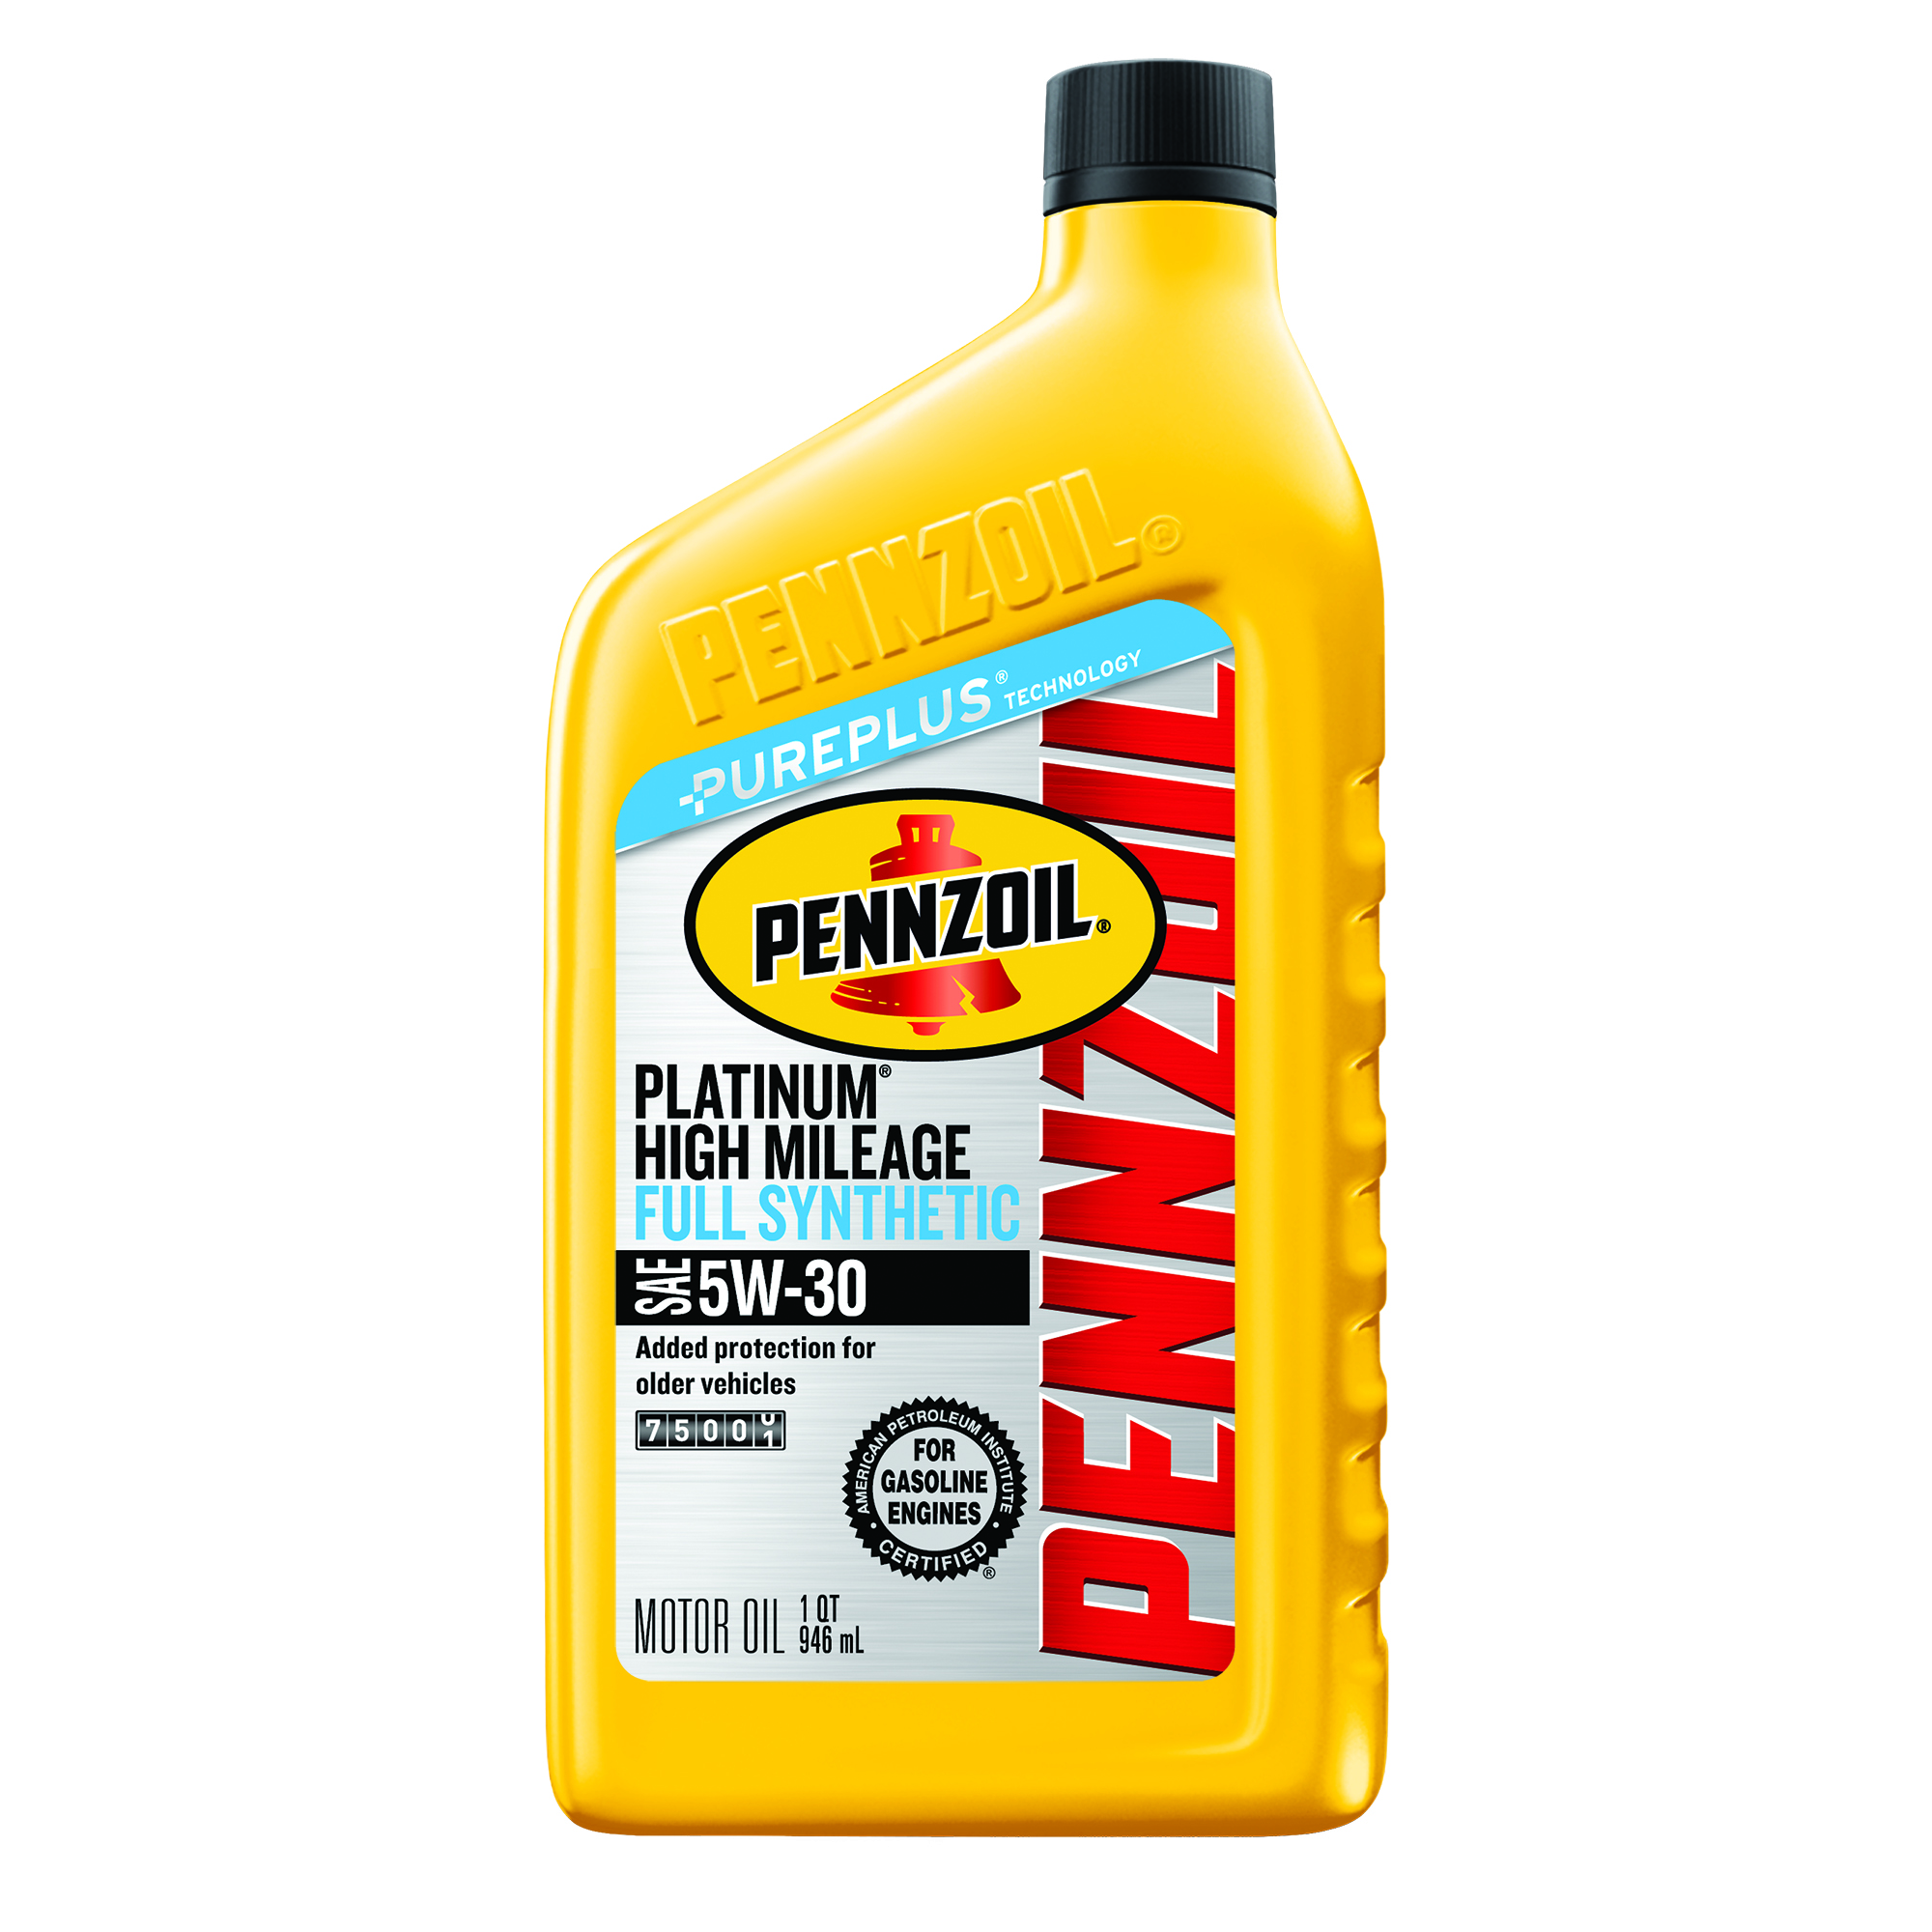 Pennzoil Platinum High Mileage 5W-30 Full Synthetic Motor Oil, 1 qt